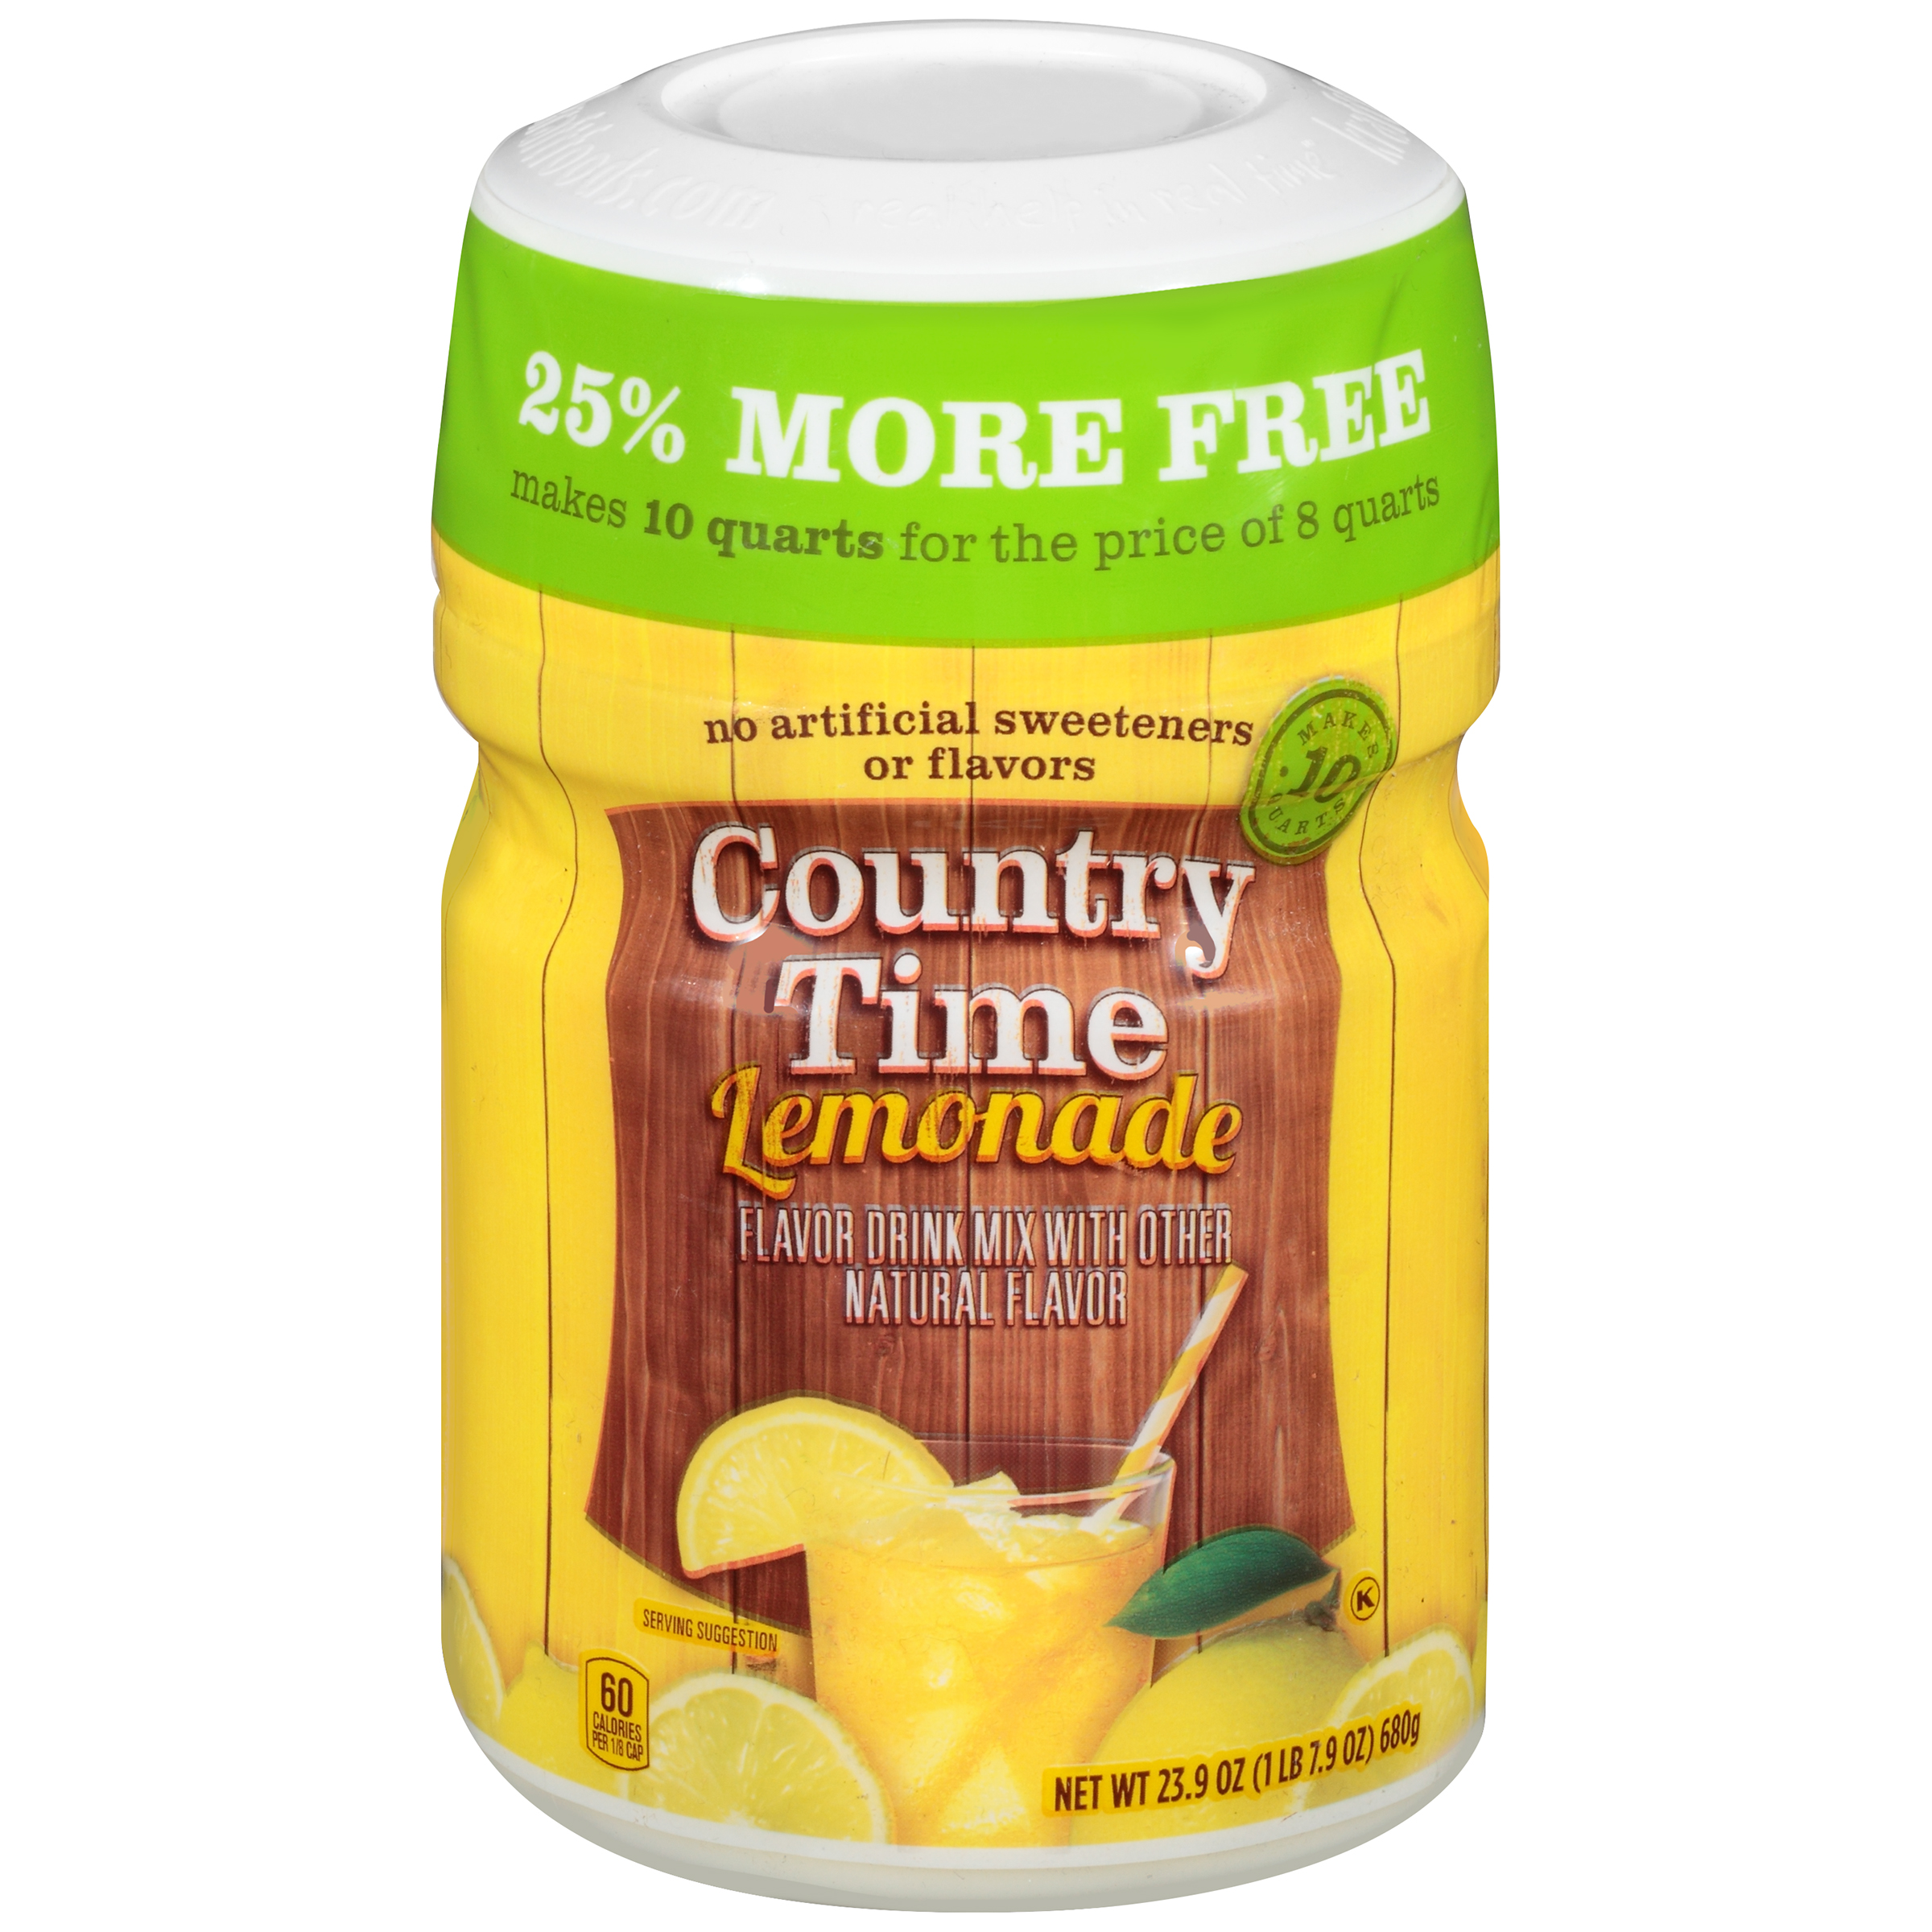 Country Time Lemonade Drink Mix 19 oz. Jar